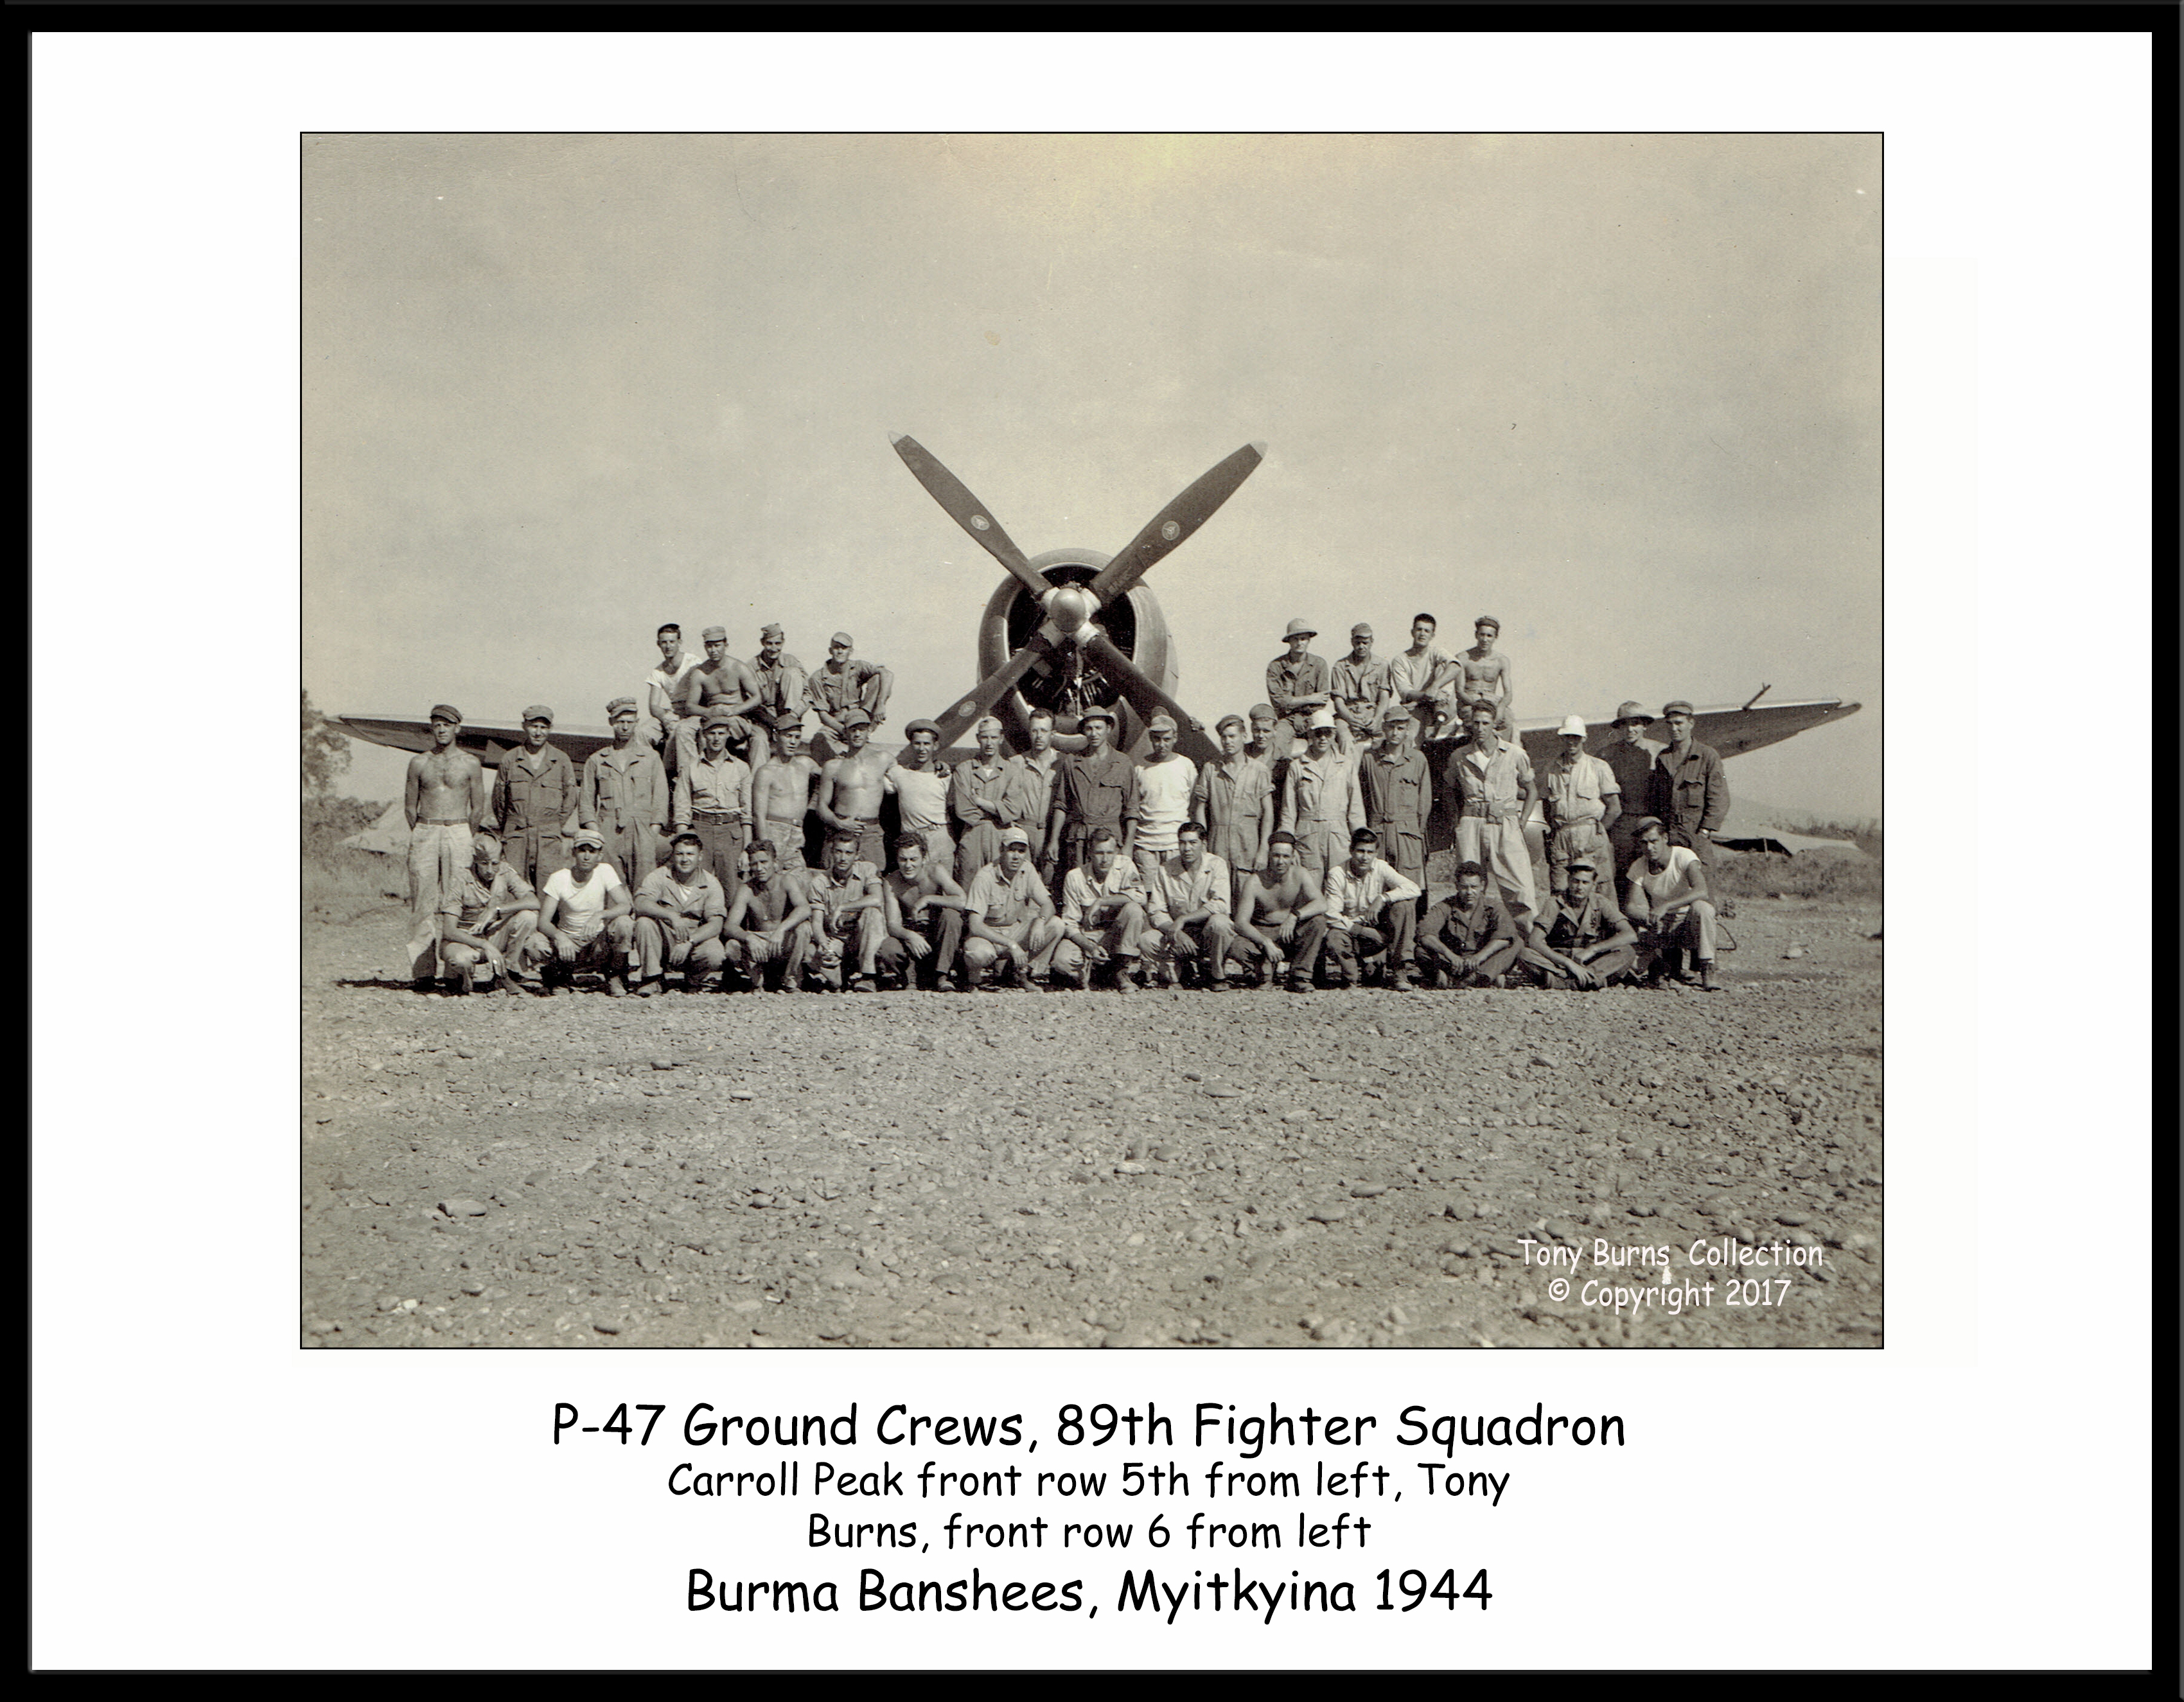 P-47D & 89thFS ground crews